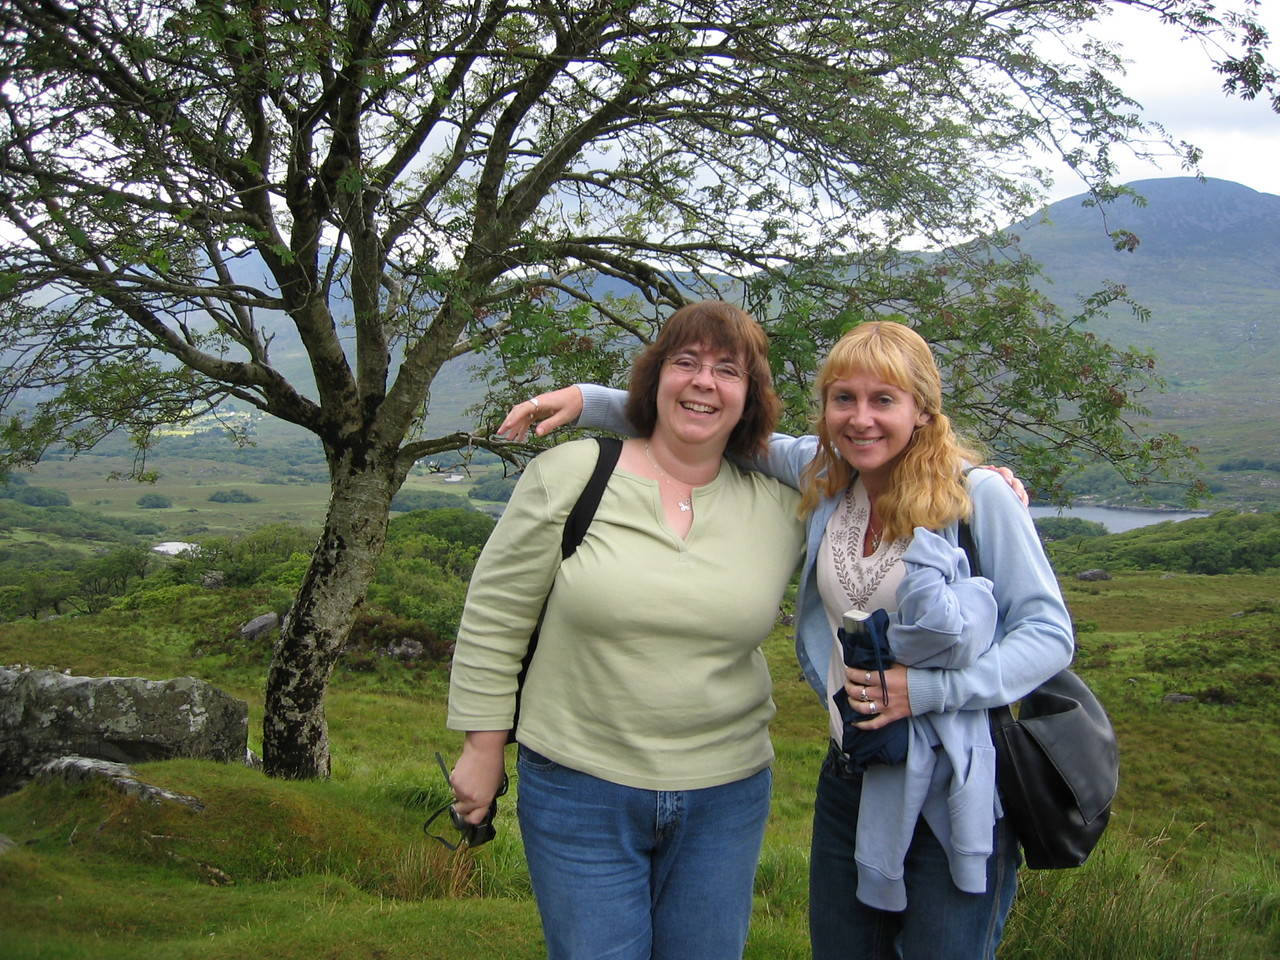 Edie and Sherri that were on the bus tour with us